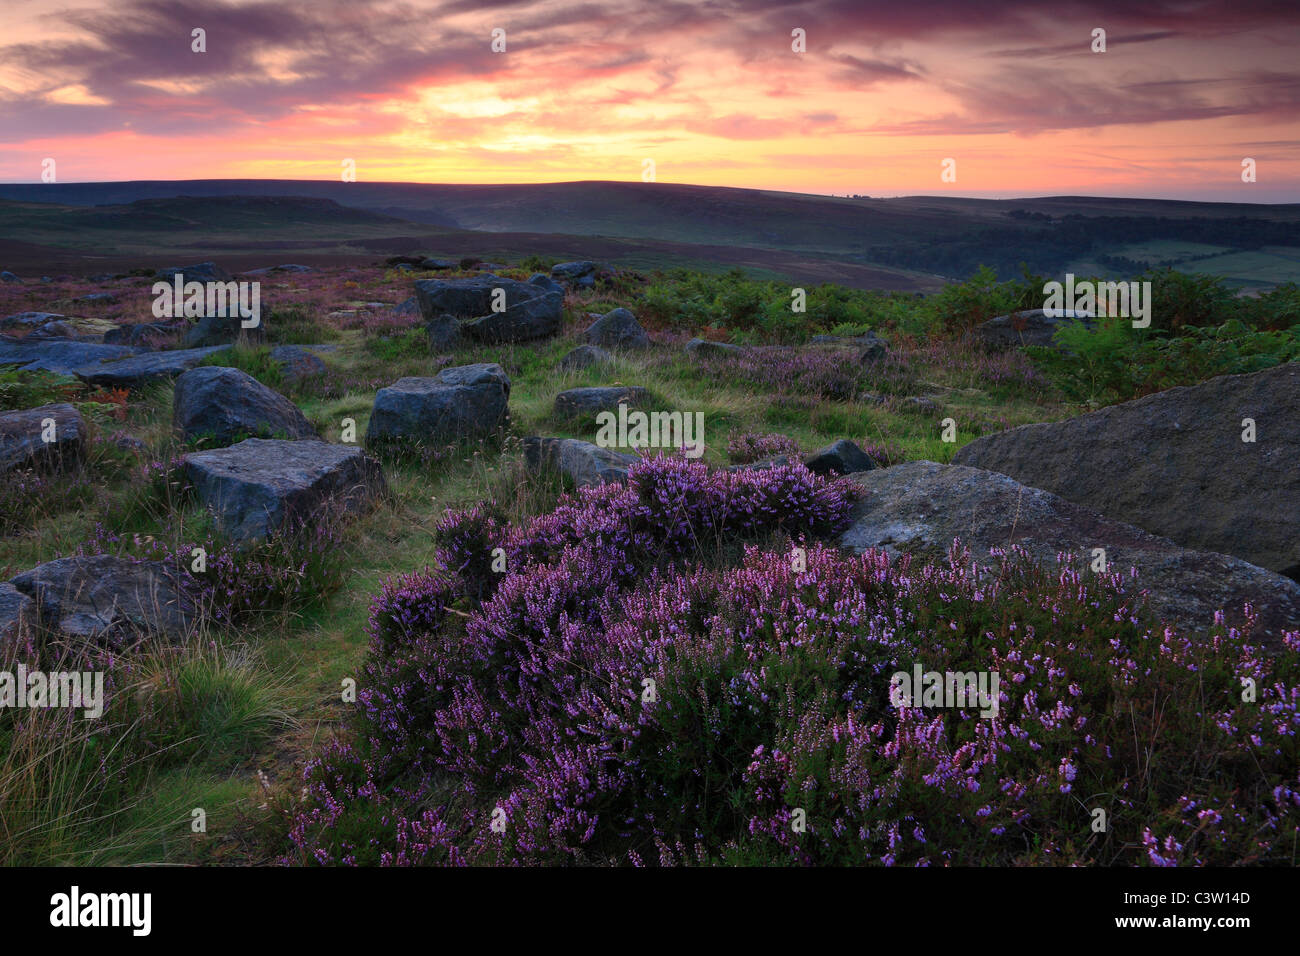 Sun rises over bright purple heather in bloom at Owler Tor near Hathersage in the Peak District of England - Stock Image